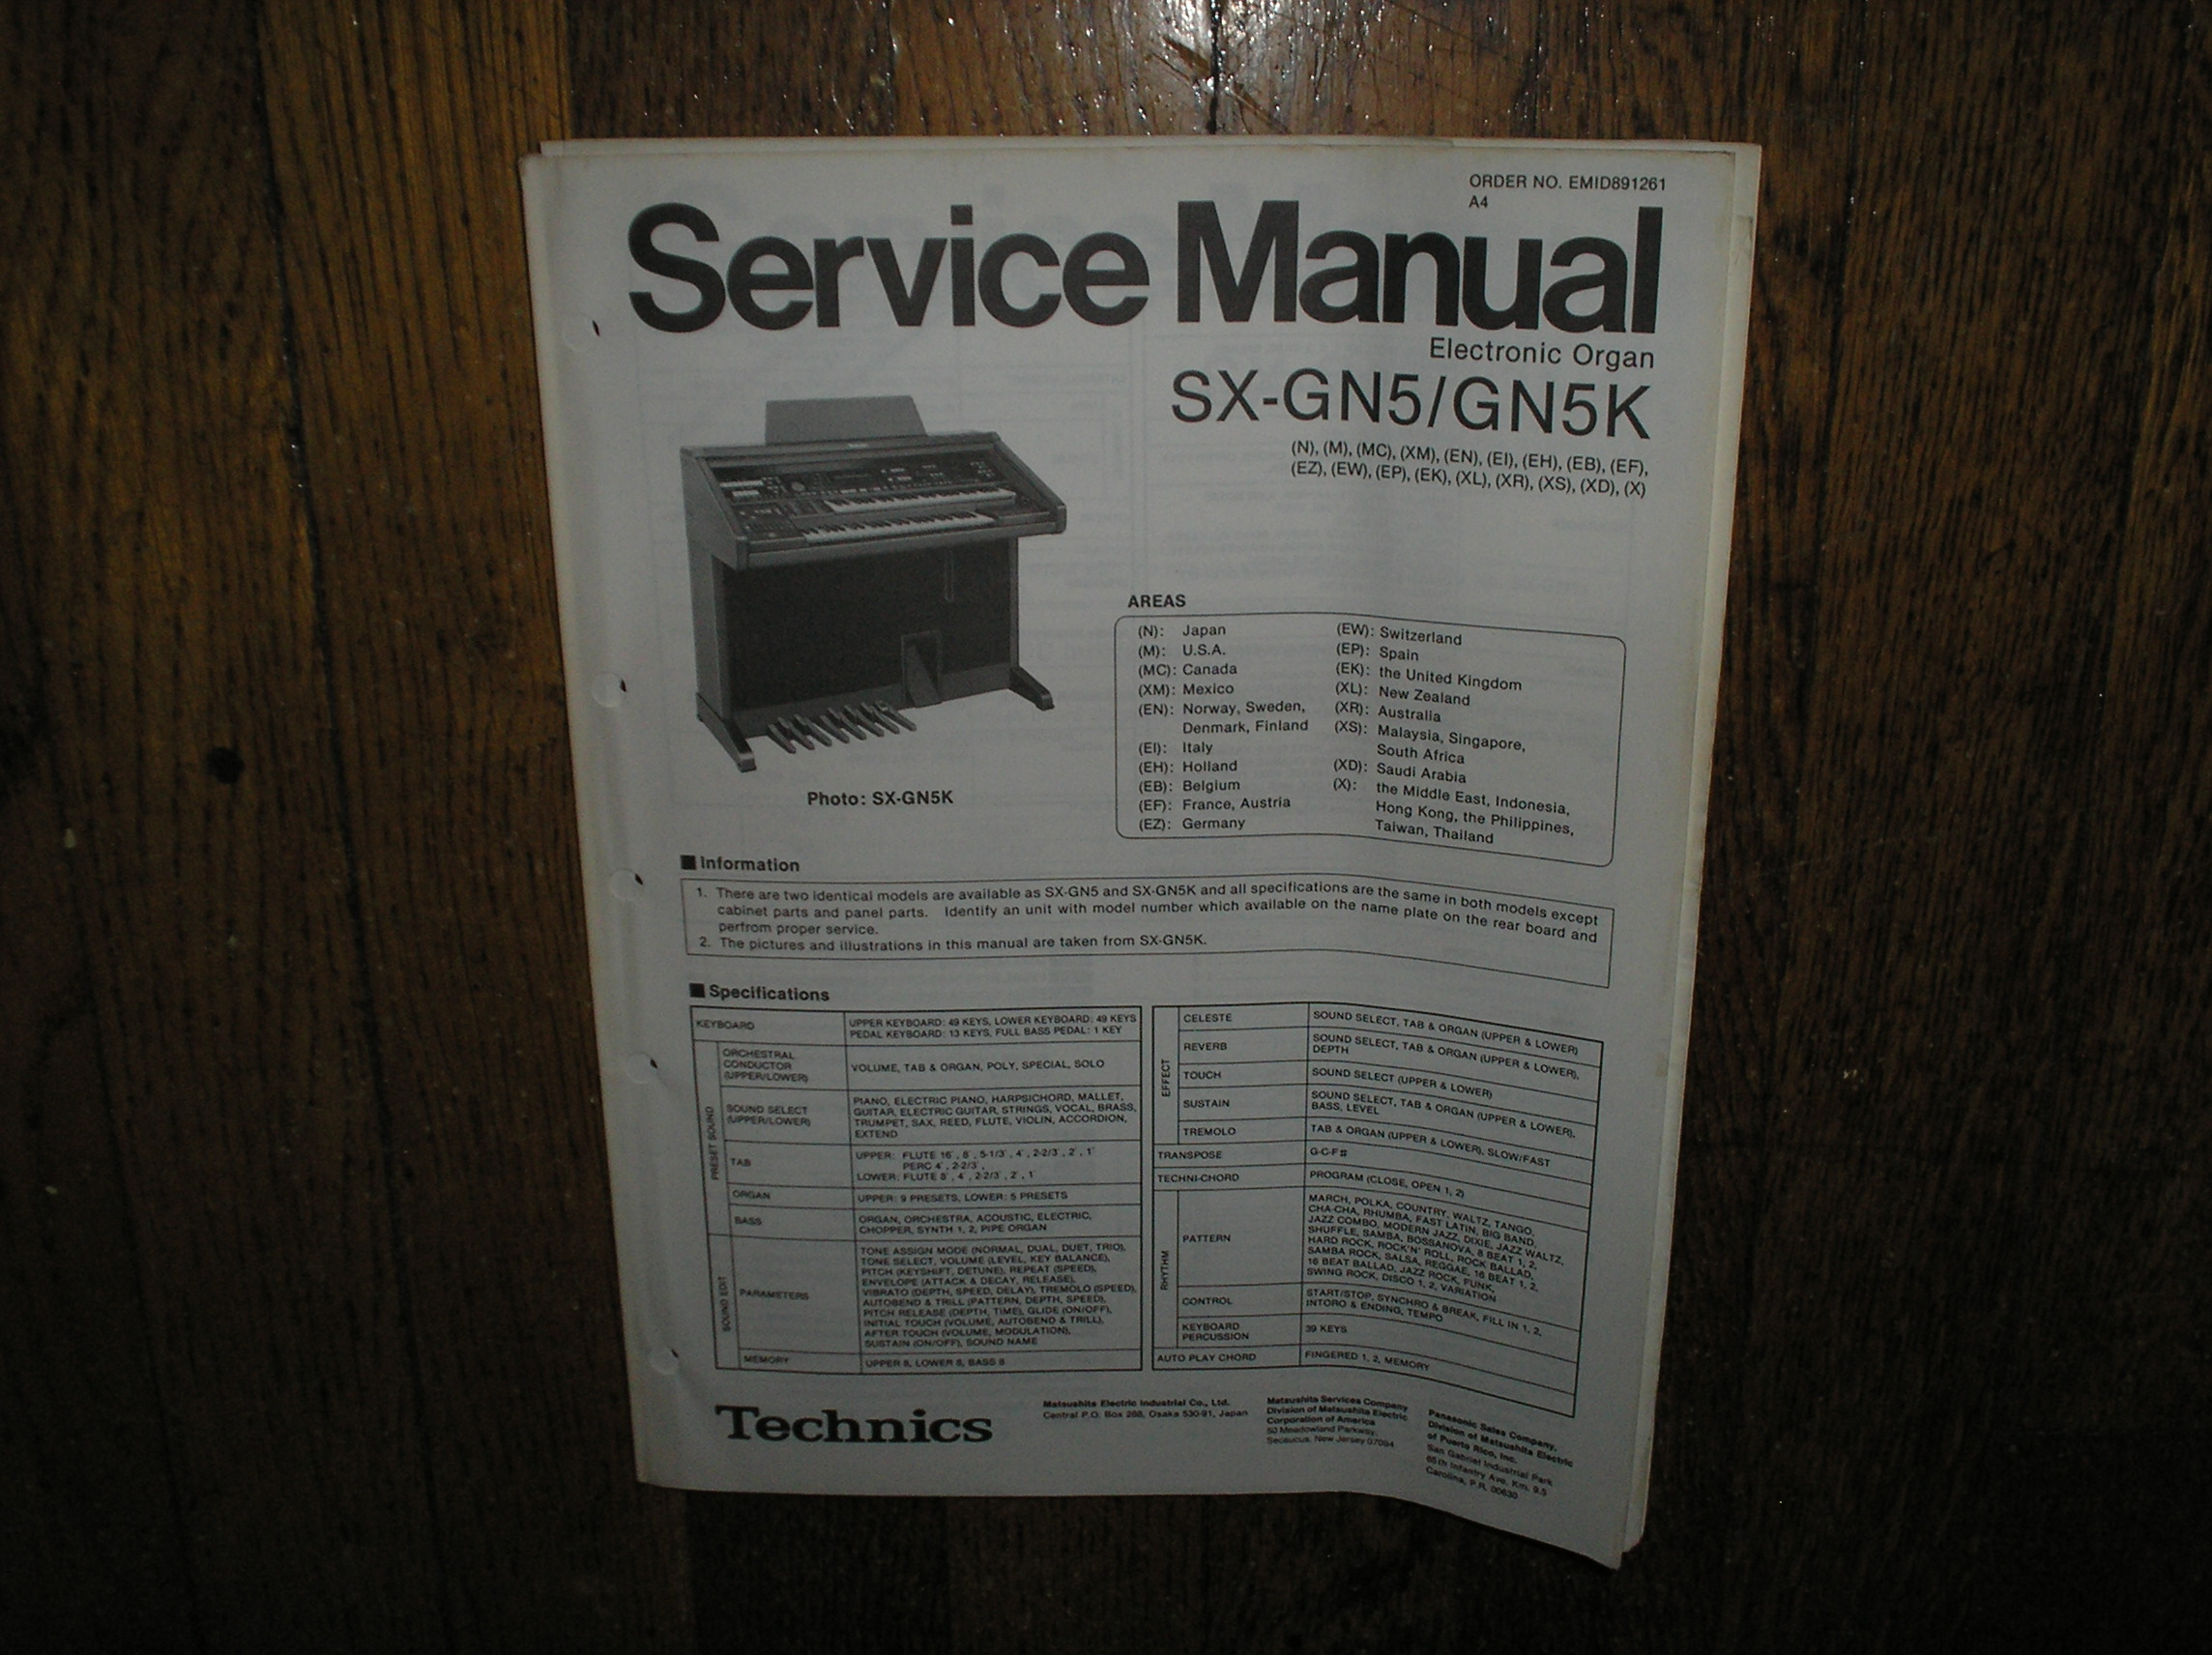 SX-GN5 SX-GN5K Electric Organ Service Manual